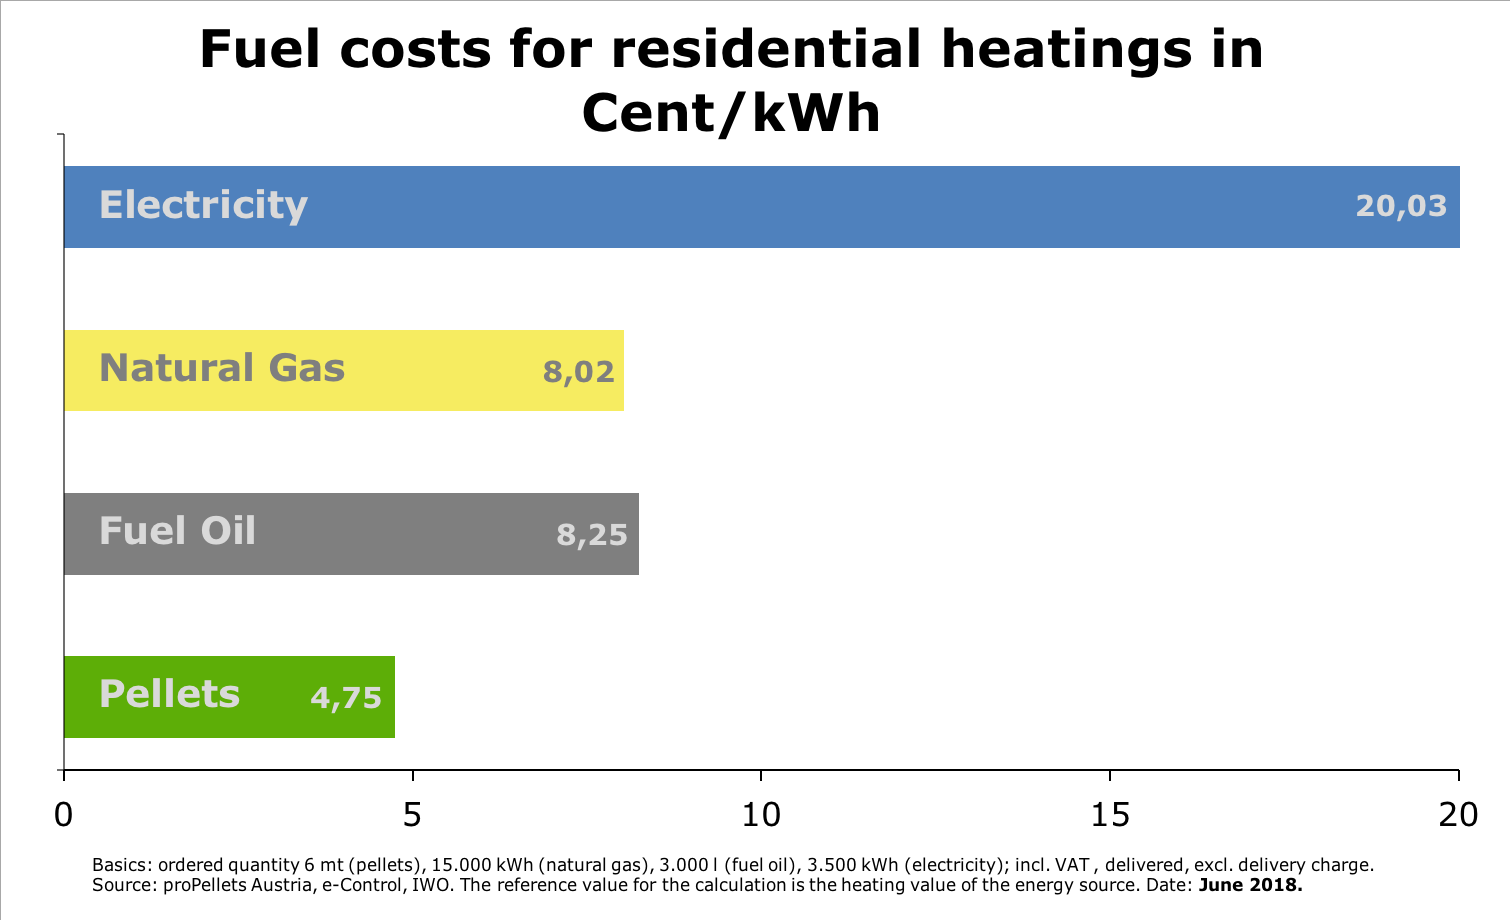 Fuel costs for residential heatings in Cent/kWh